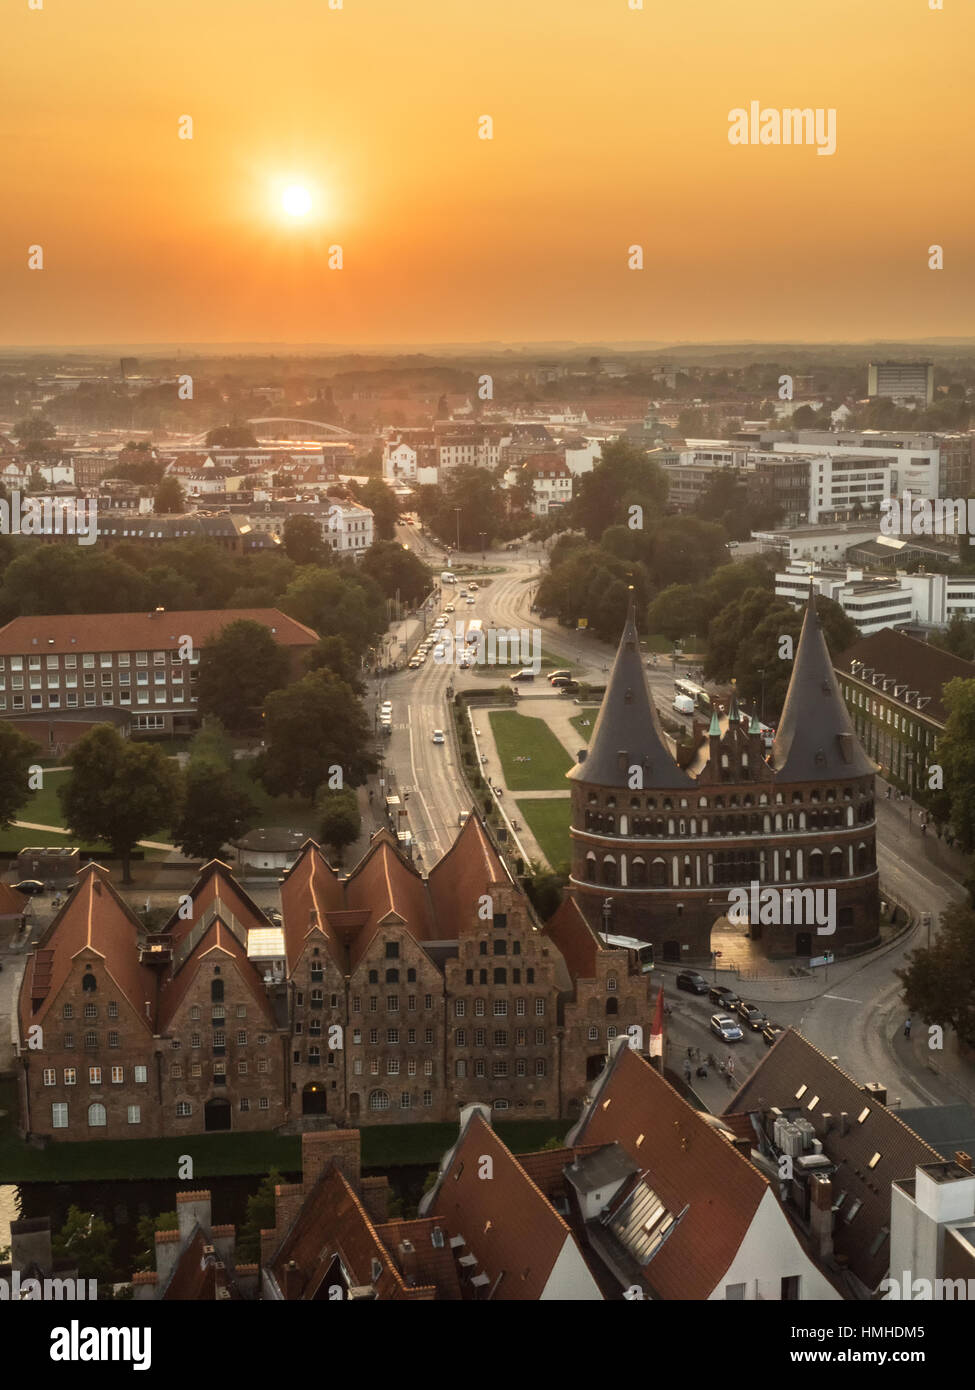 Aerial view of the city Luebeck, Germany, at sunset - Stock Image